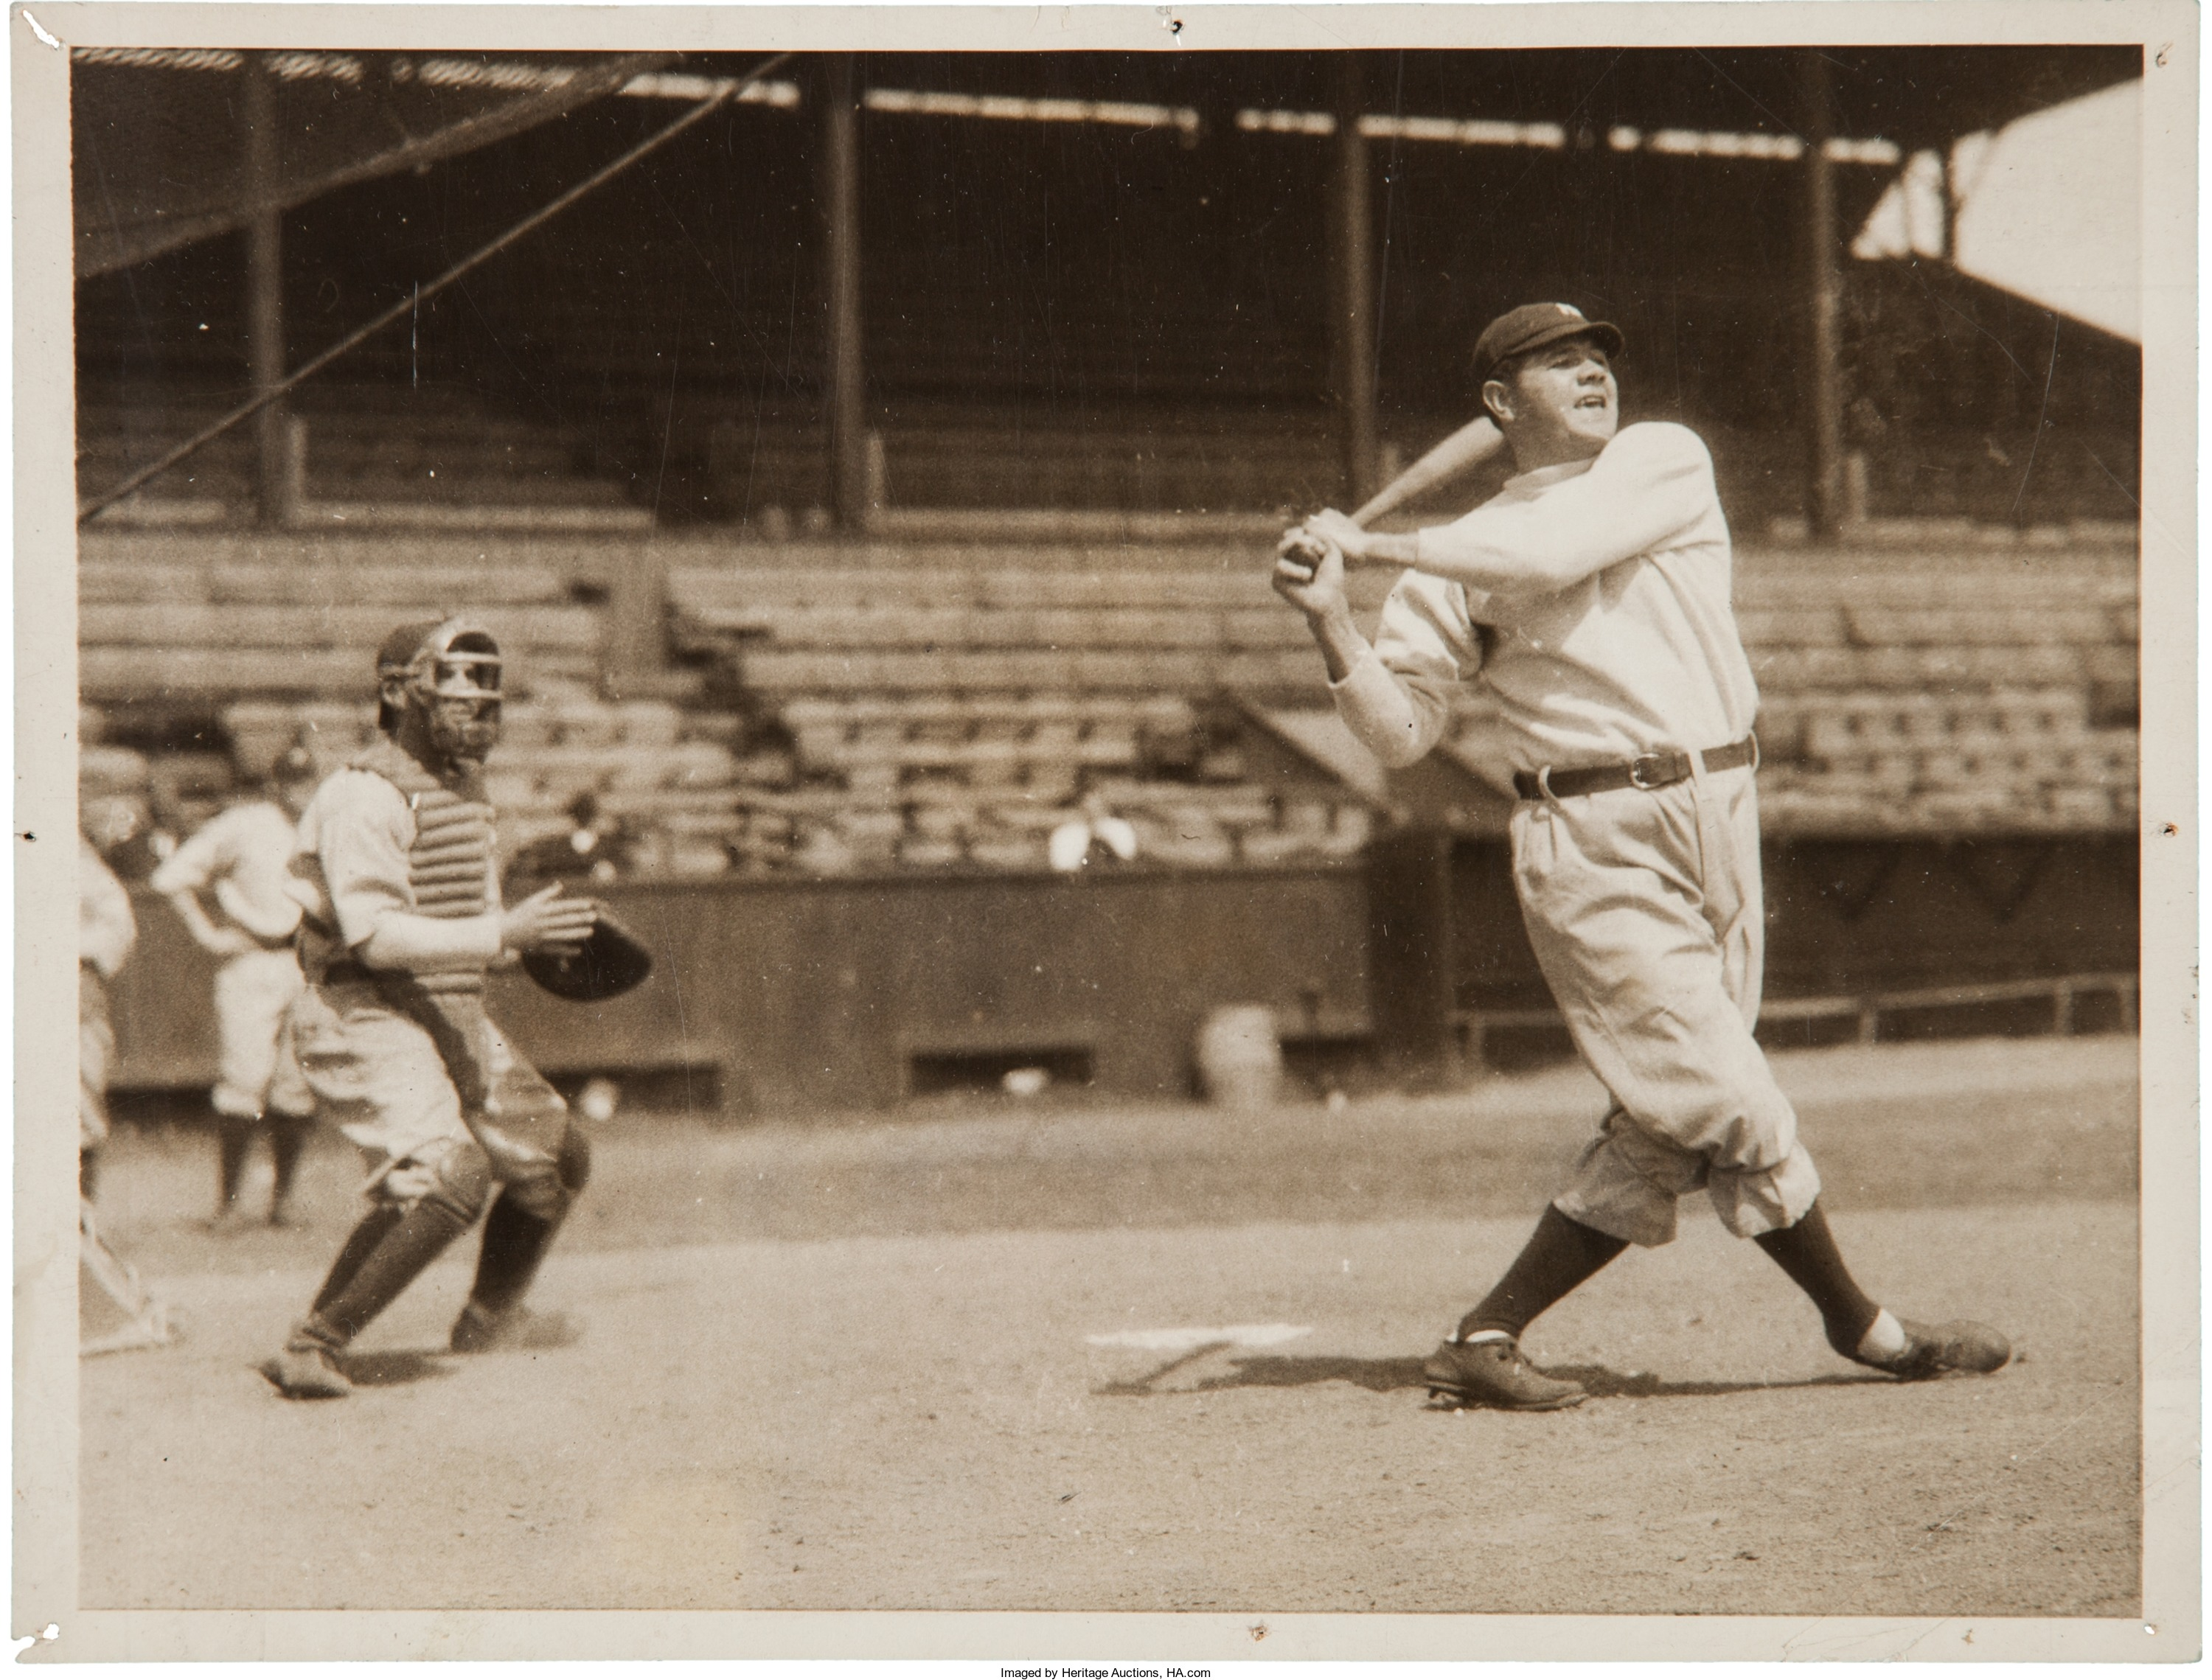 Decade-by-Decade – 1920s: Tragedy, The Rise of the Yankees and The Birth of Modern Baseball